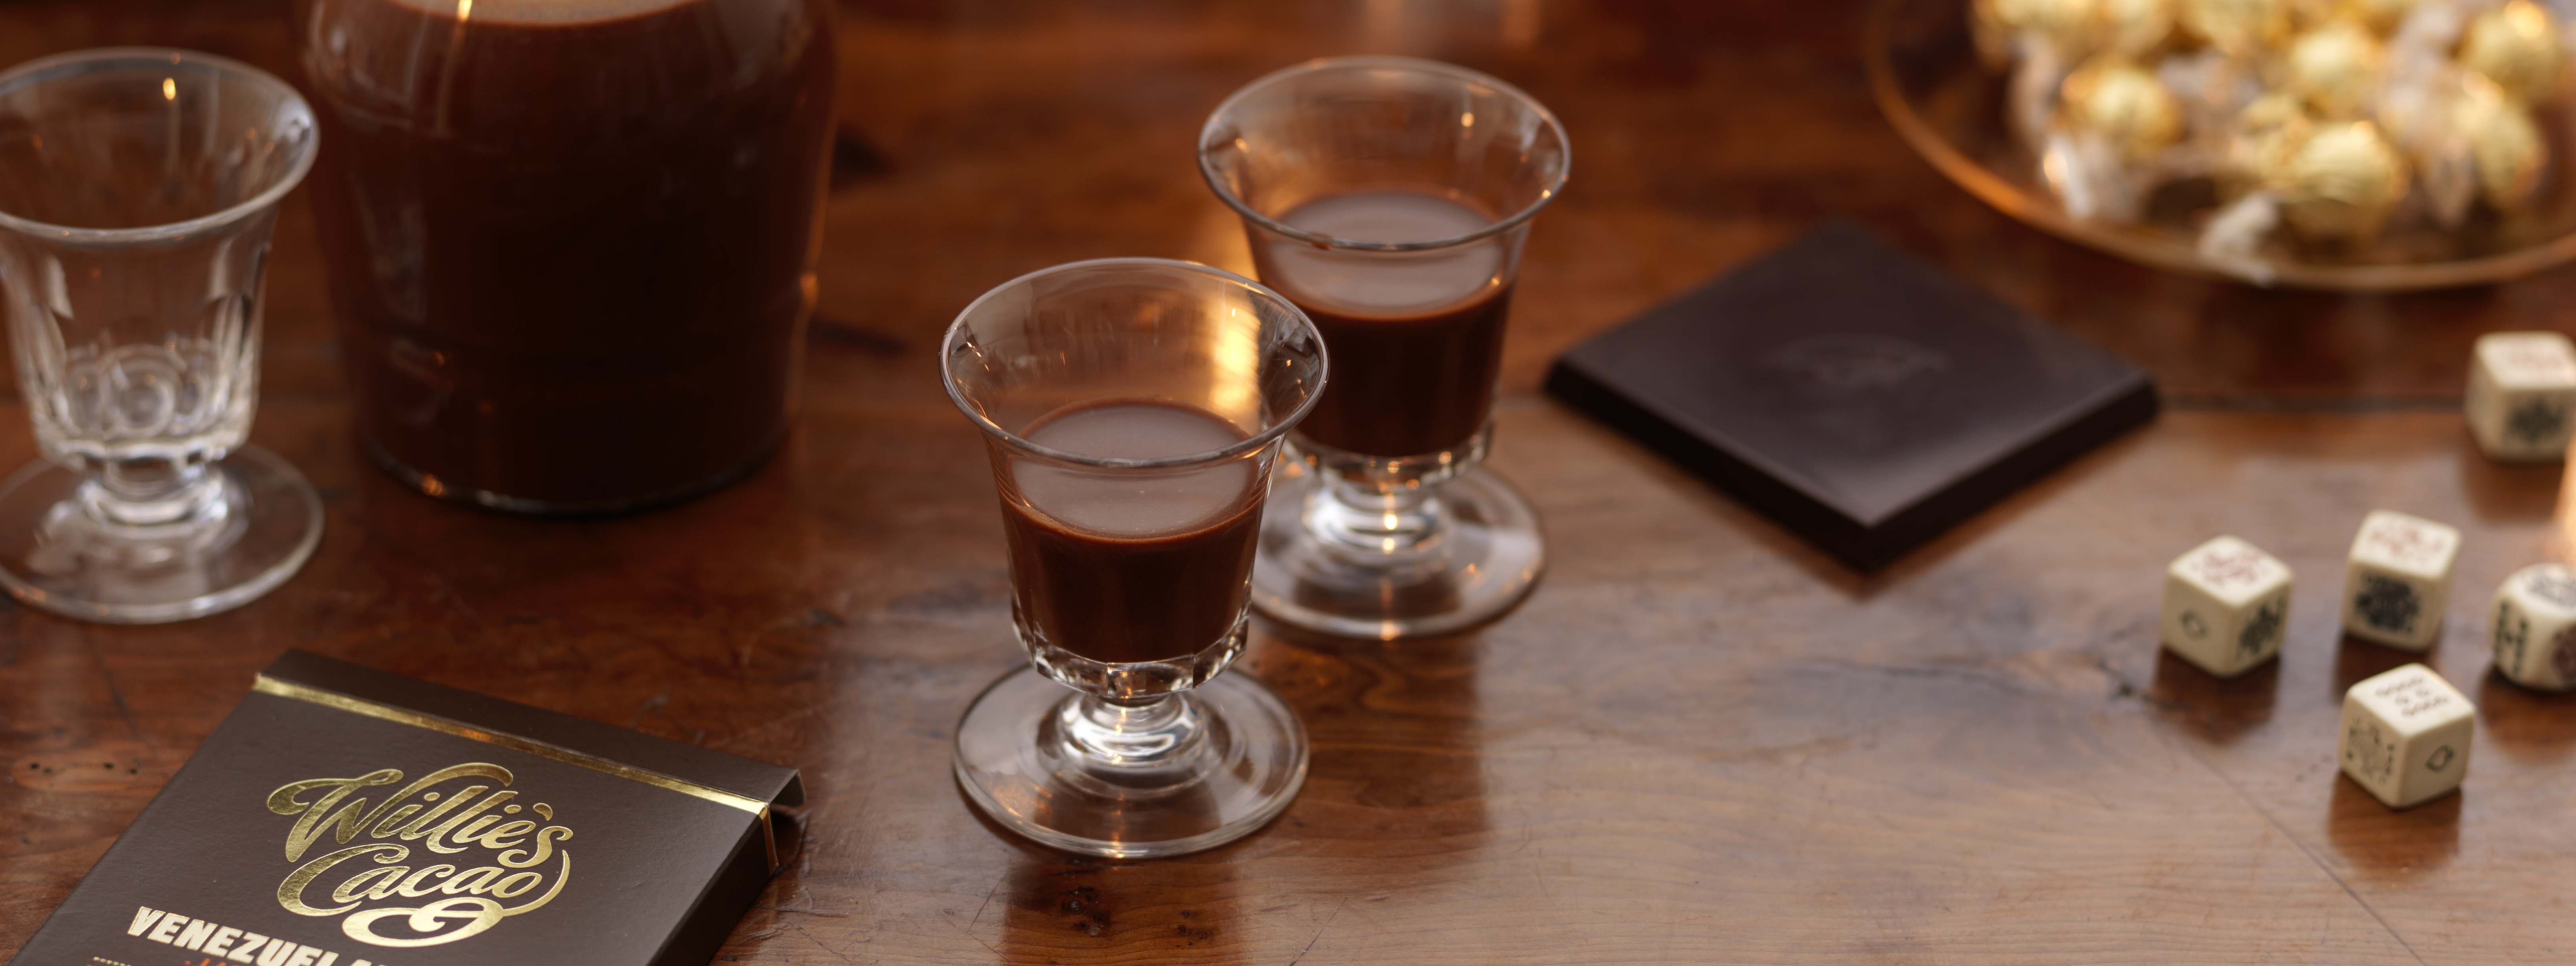 choc-vodka-1600-600-0003